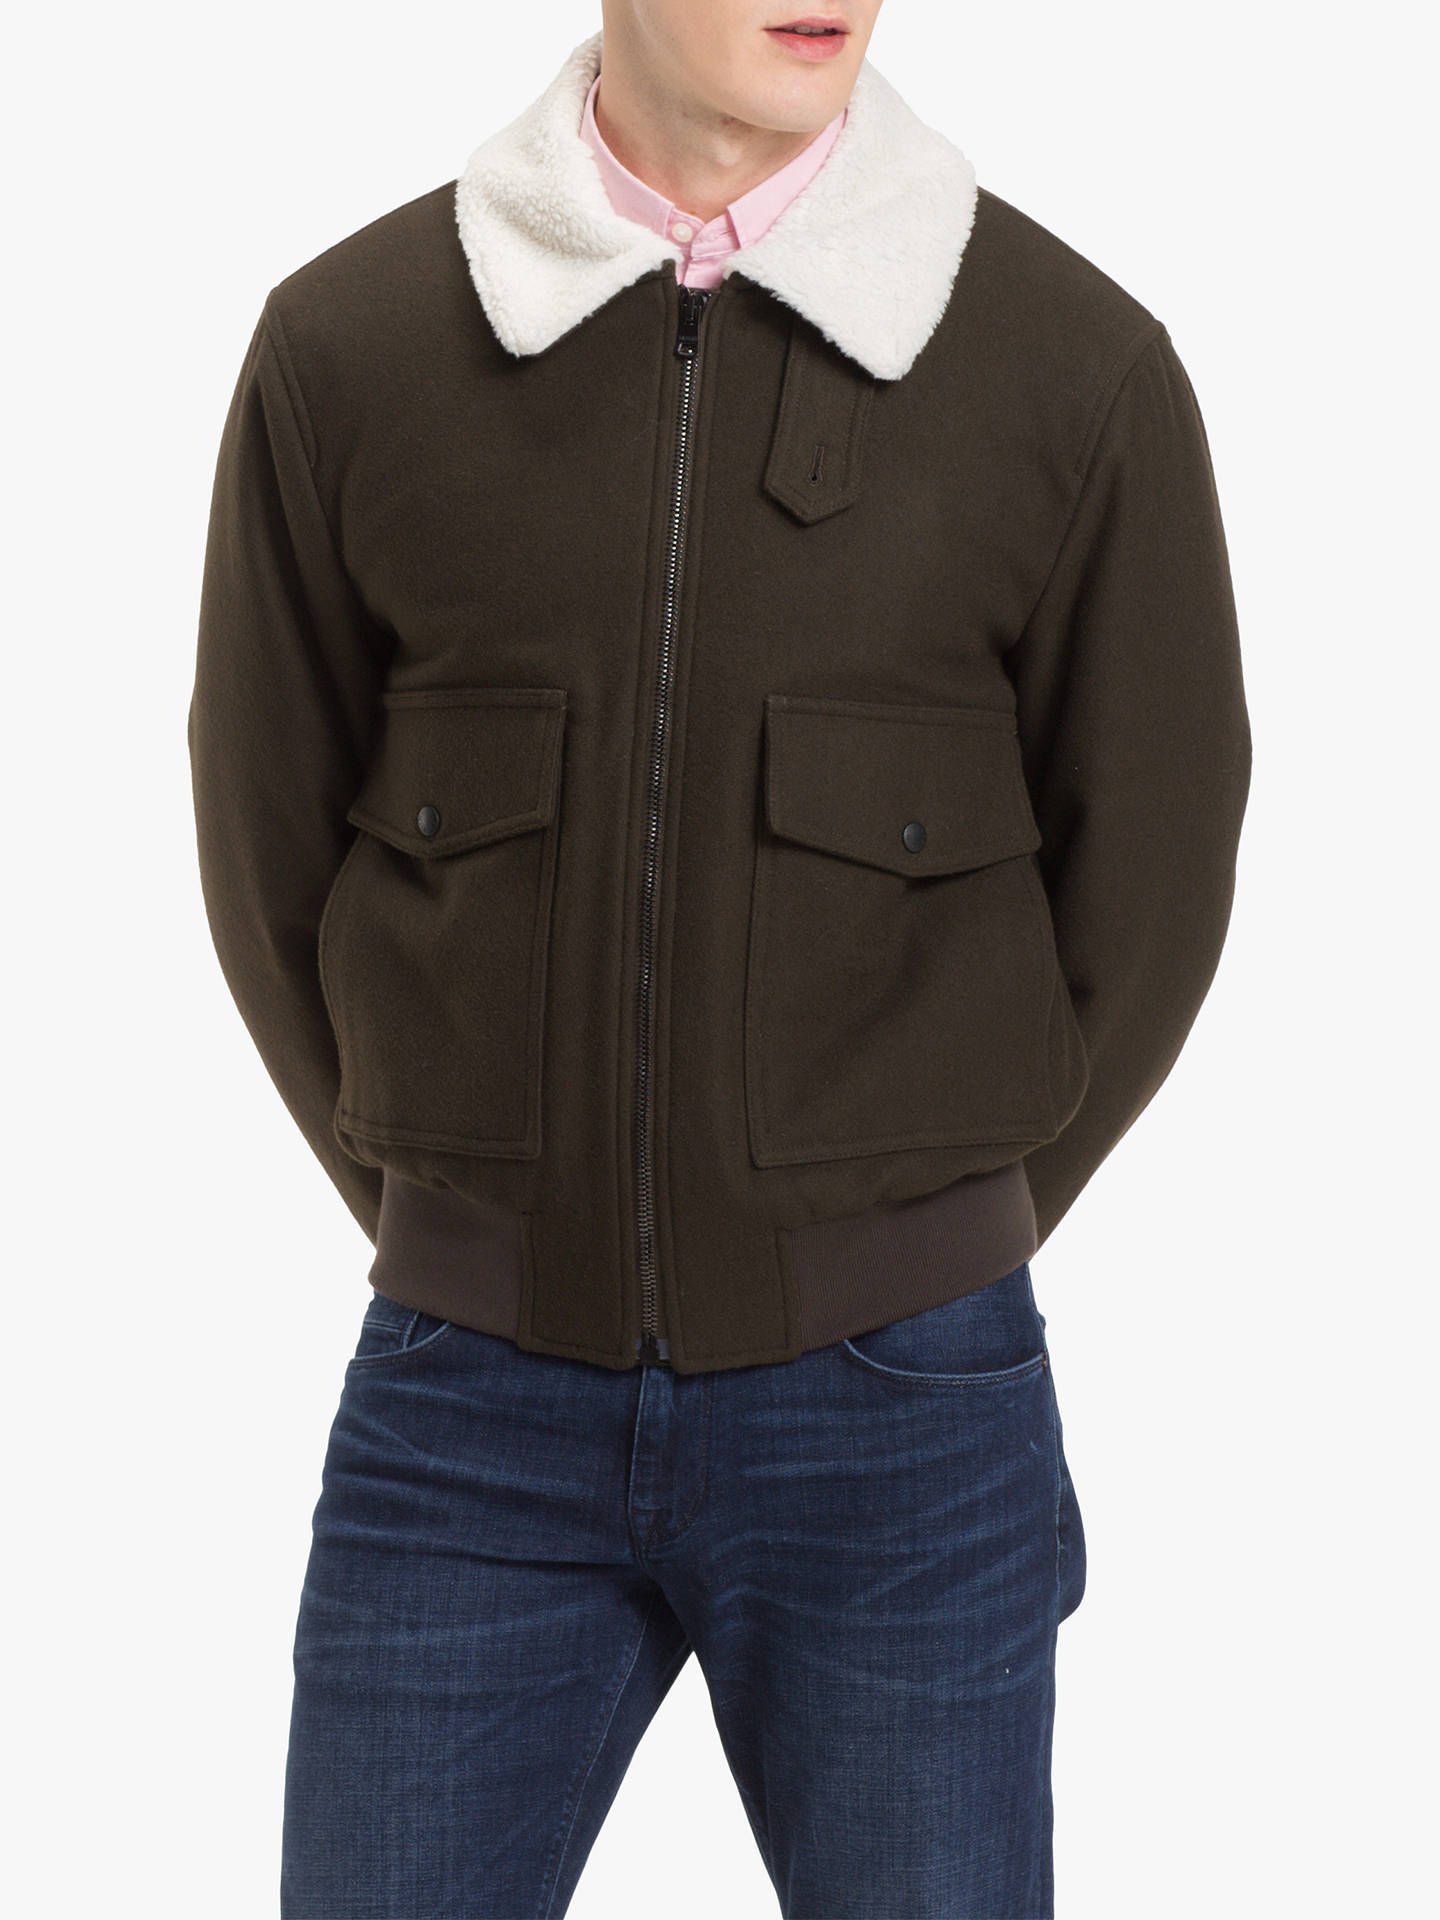 daab010aaedd7 Buy Tommy Hilfiger Melton Wool Bomber Jacket